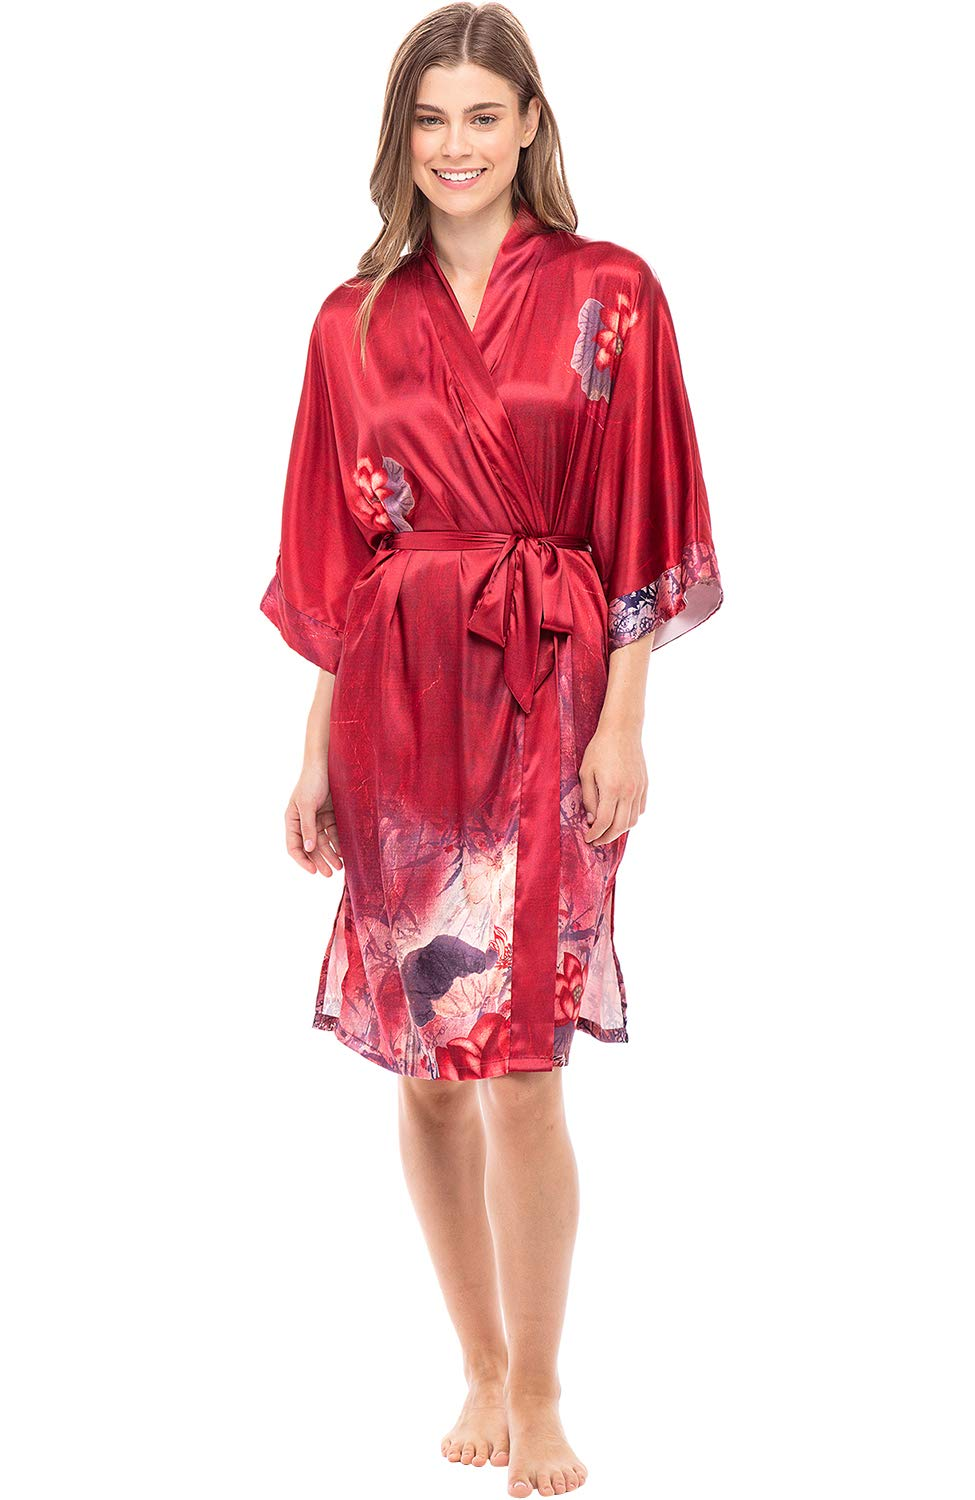 Alexaner Del Rossa Women's Midi Length Satin Kimono Wrap - Belted Robe with Pockets, Limited Edition Print